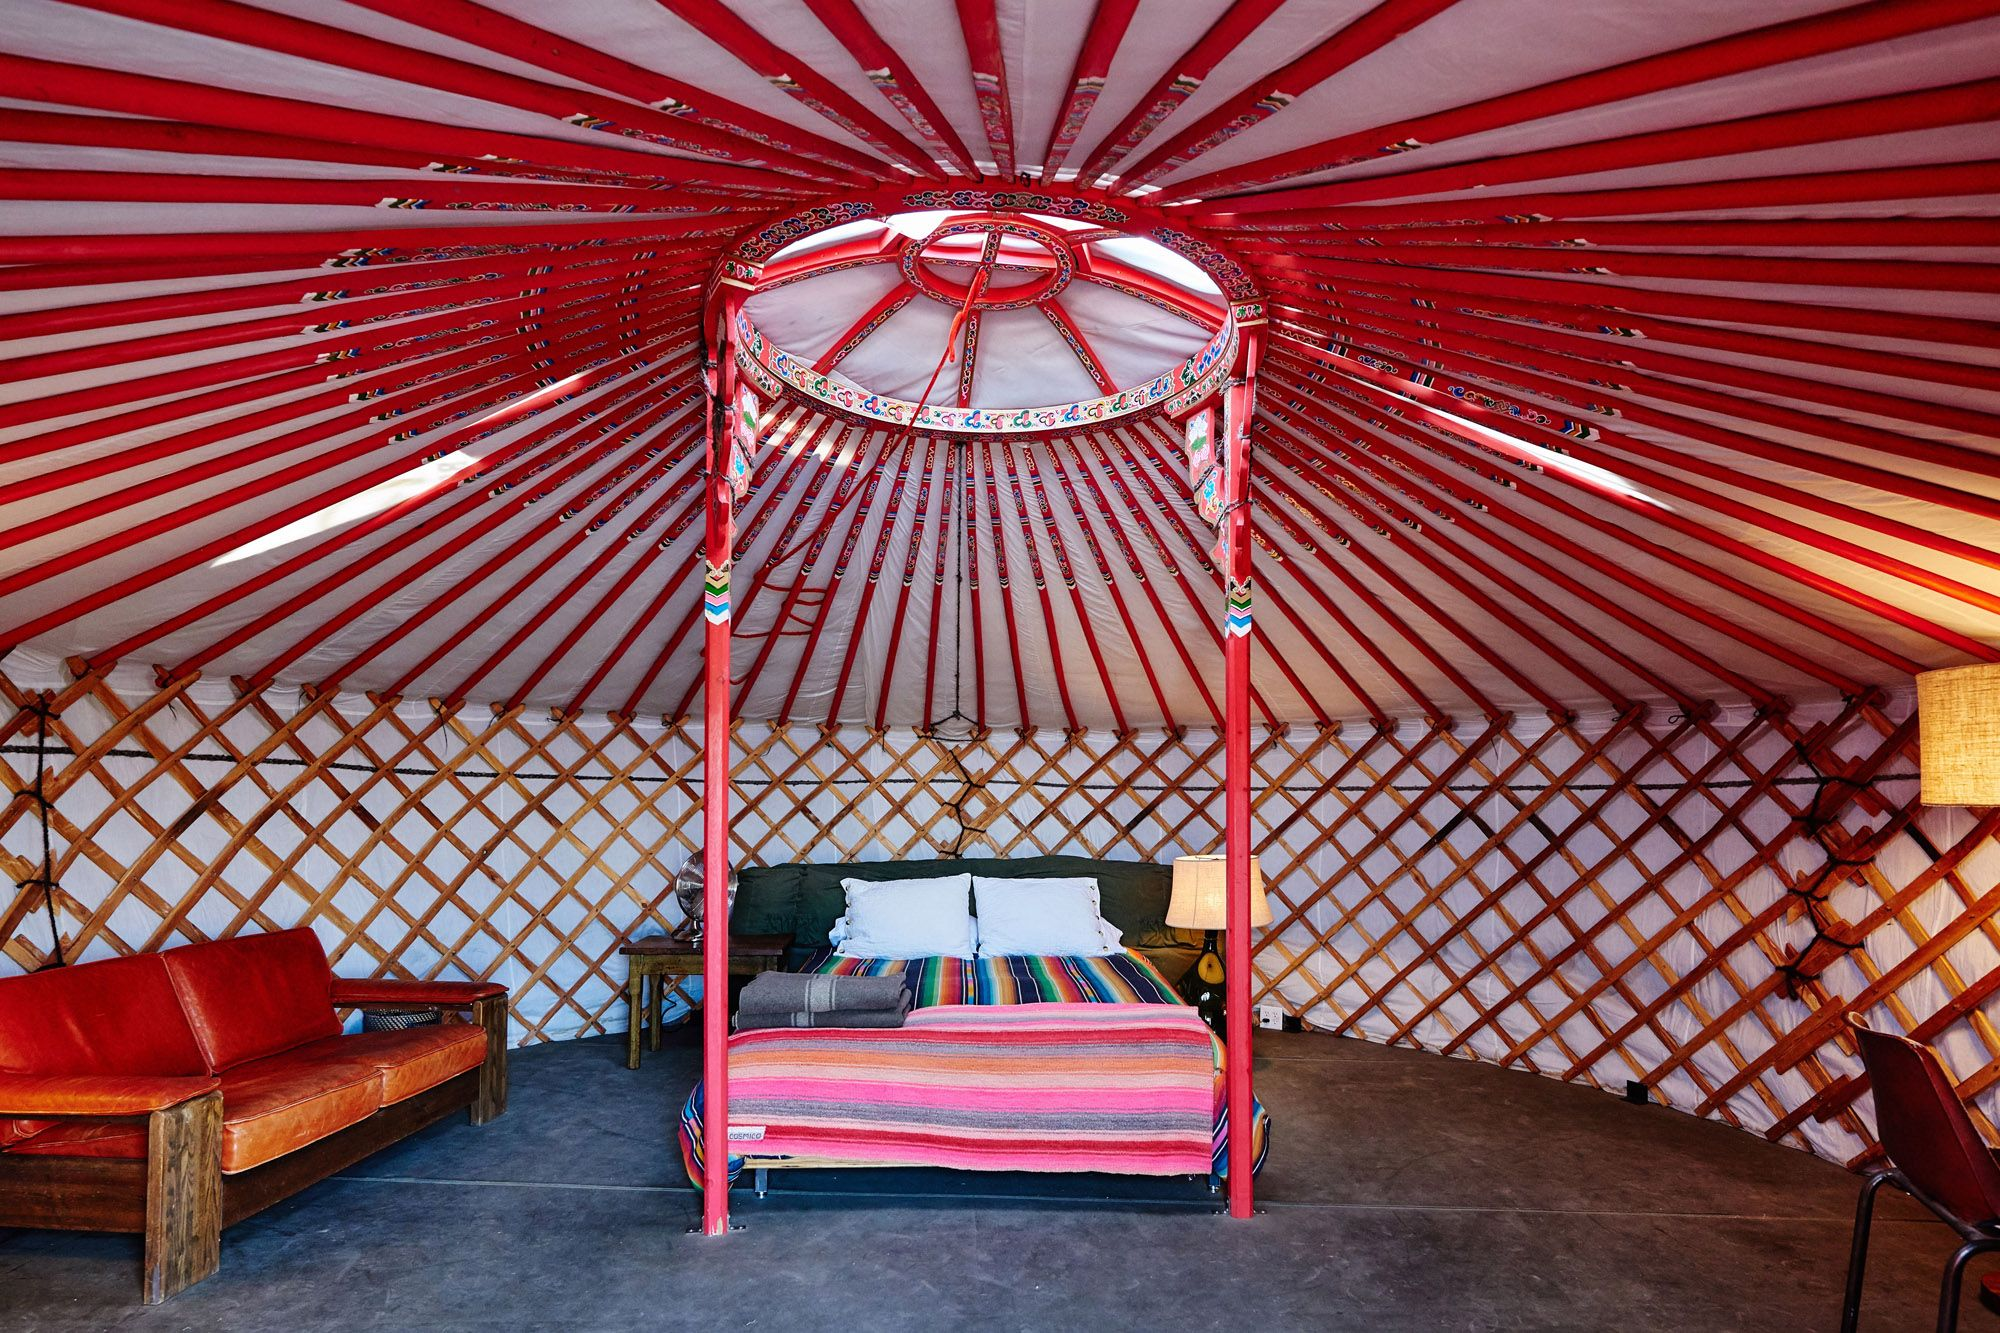 Yurt in Marfa, Texas